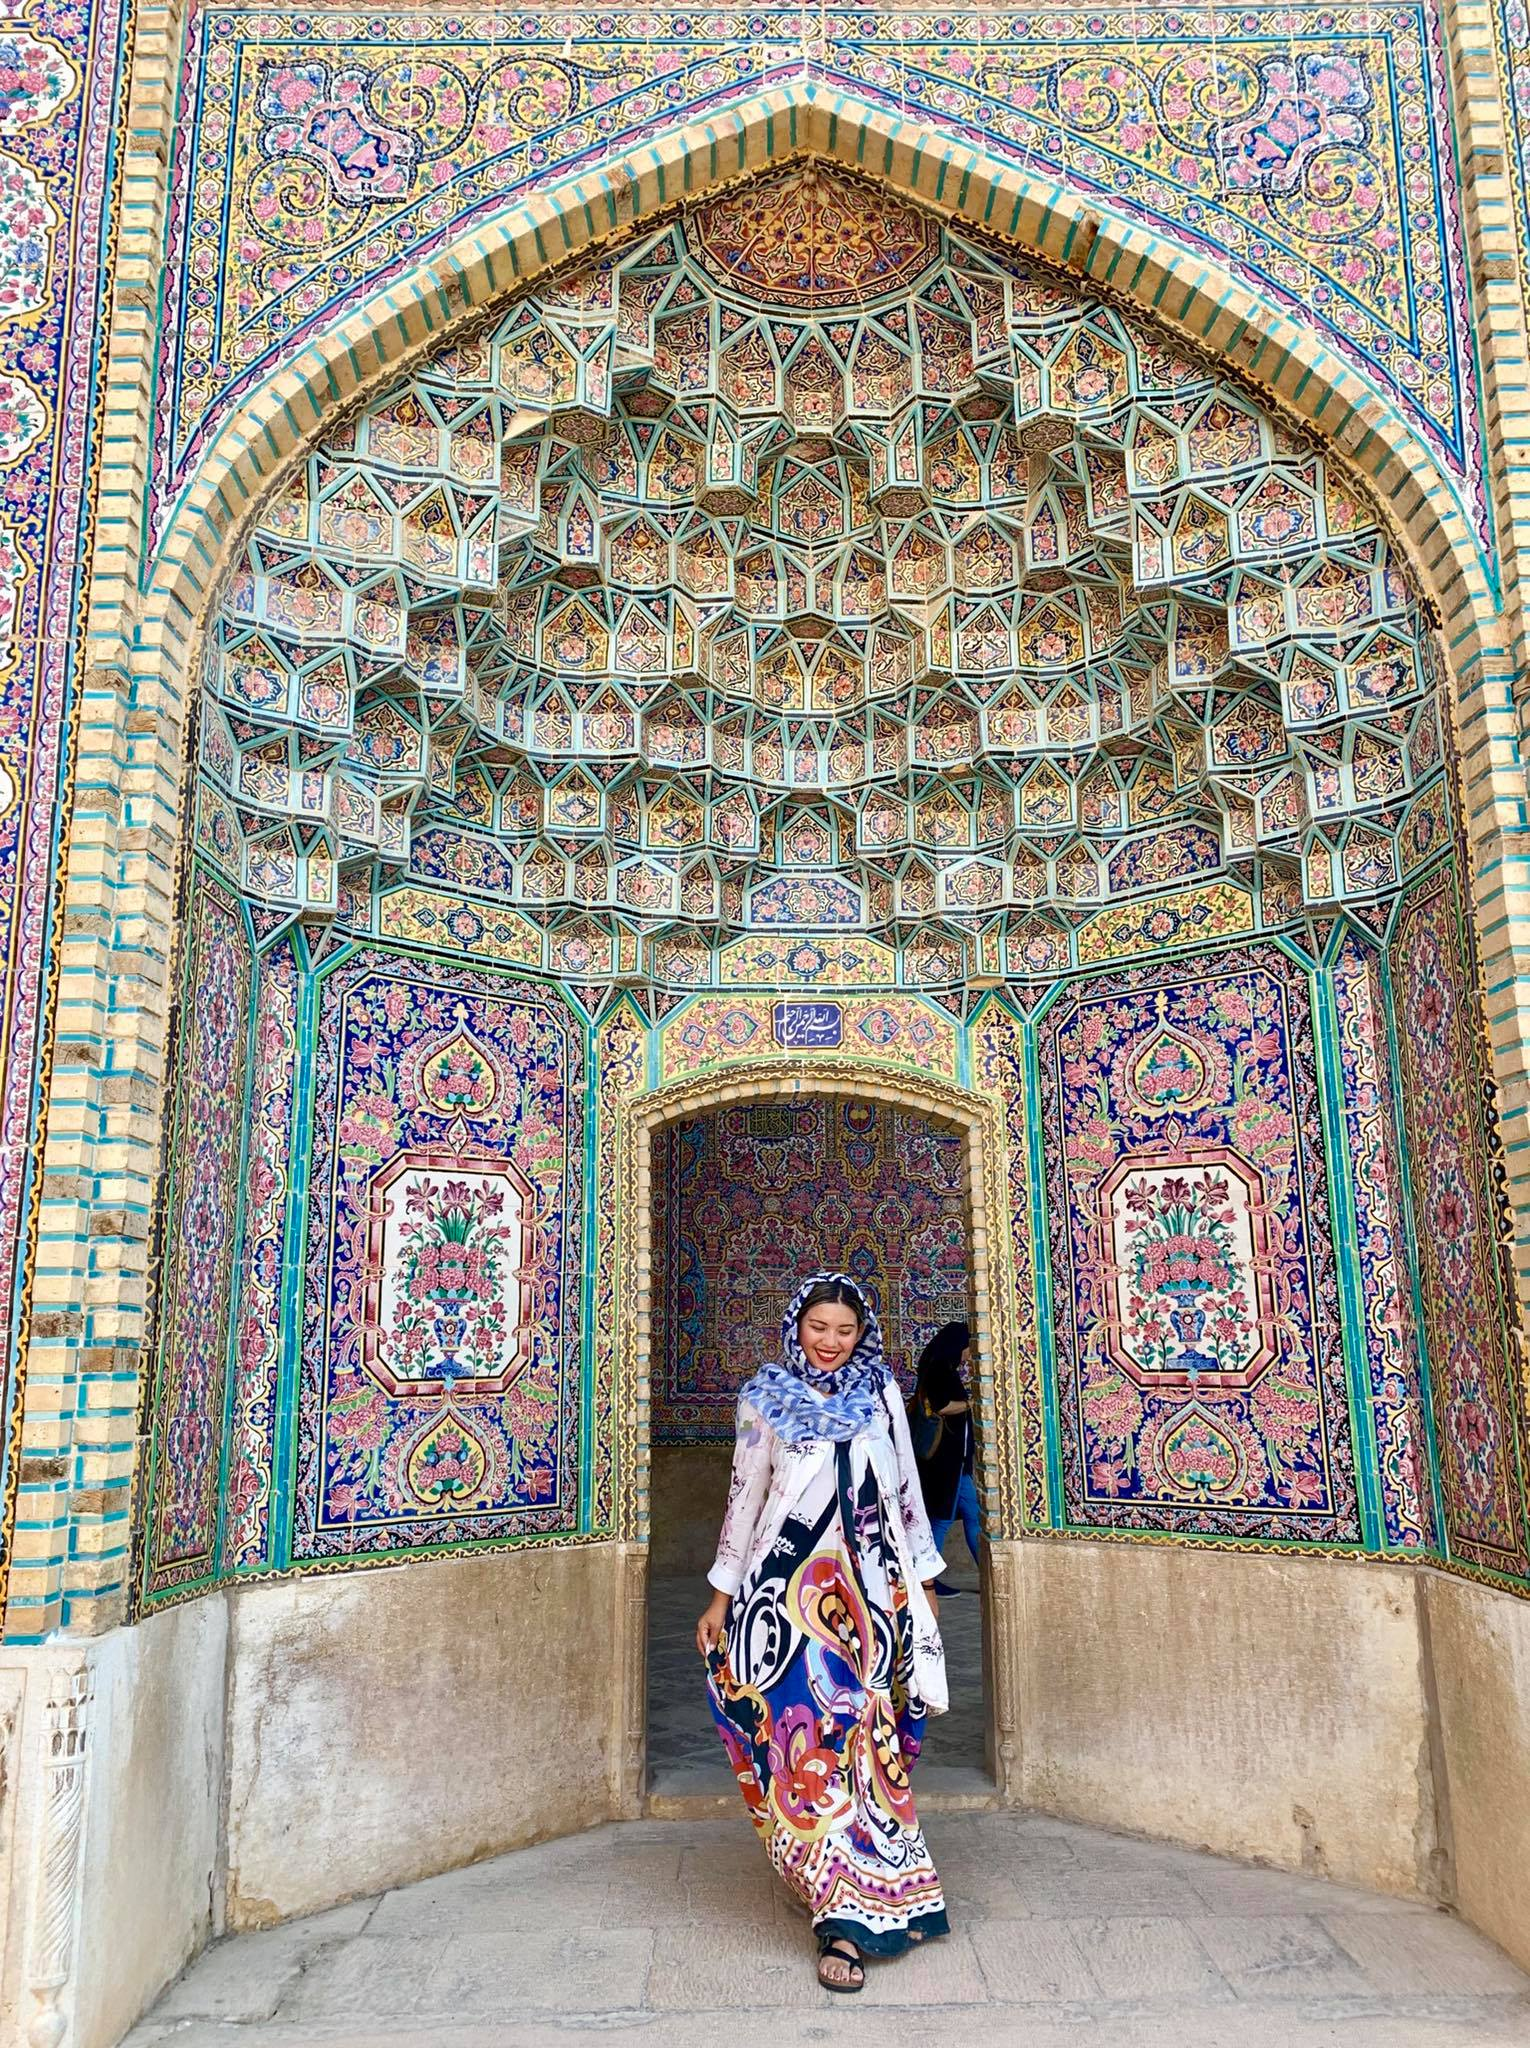 Kach Solo Travels in 2019: Good morning from SHIRAZ, IRAN!